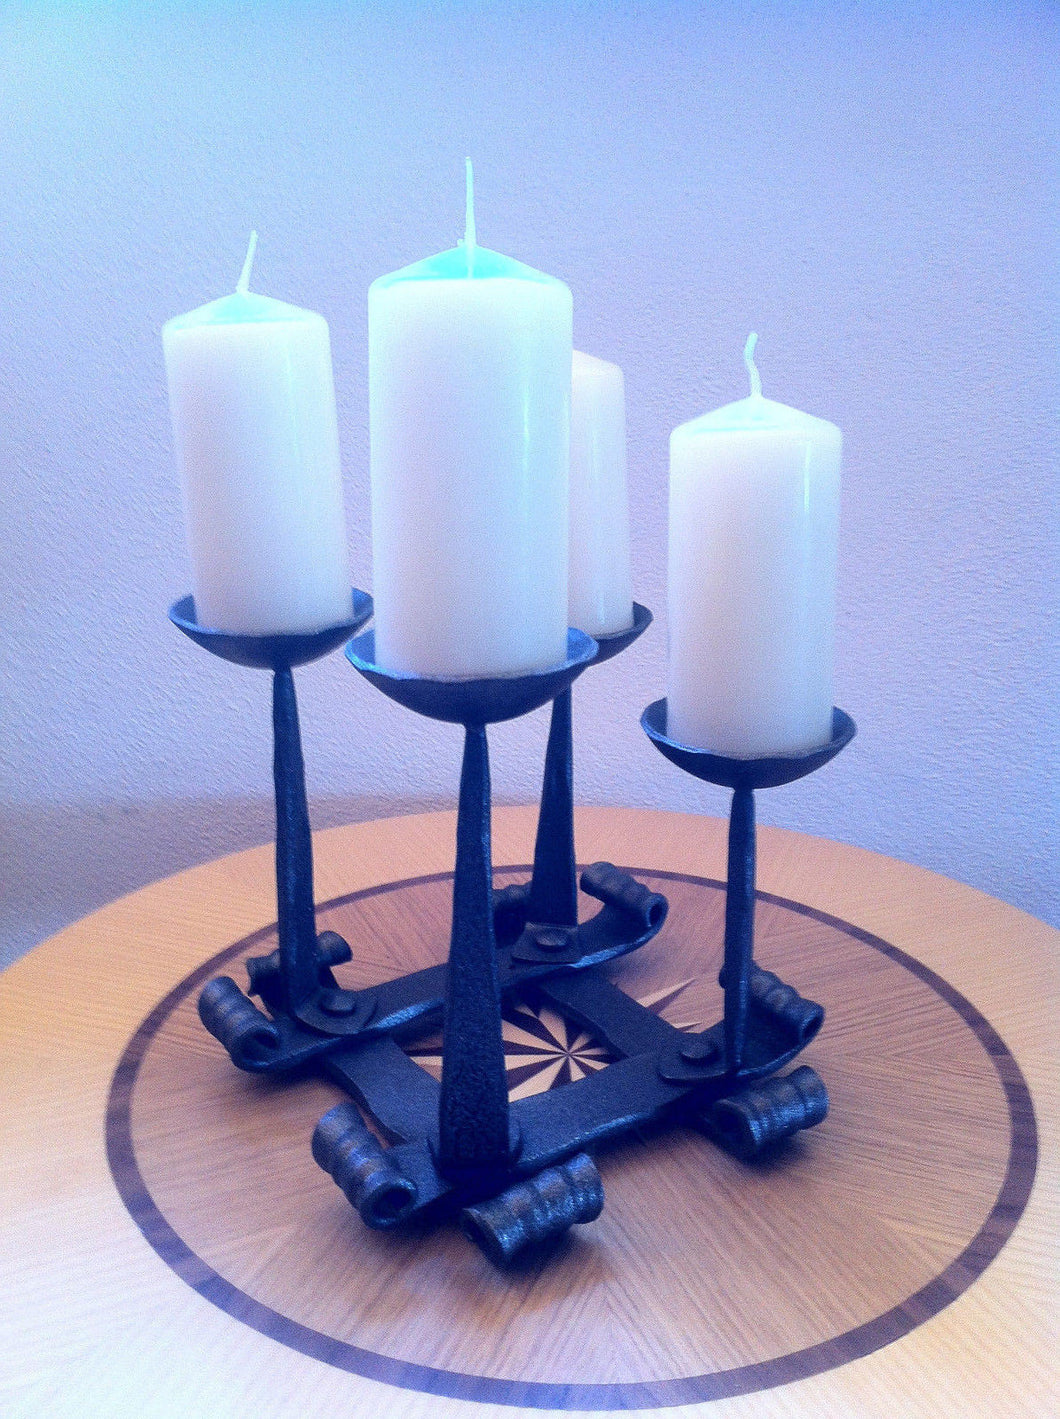 Hand Forged Candlestick Candle Holder 4 Candles Advent Decoration Squa Wood Iron Copper Craft